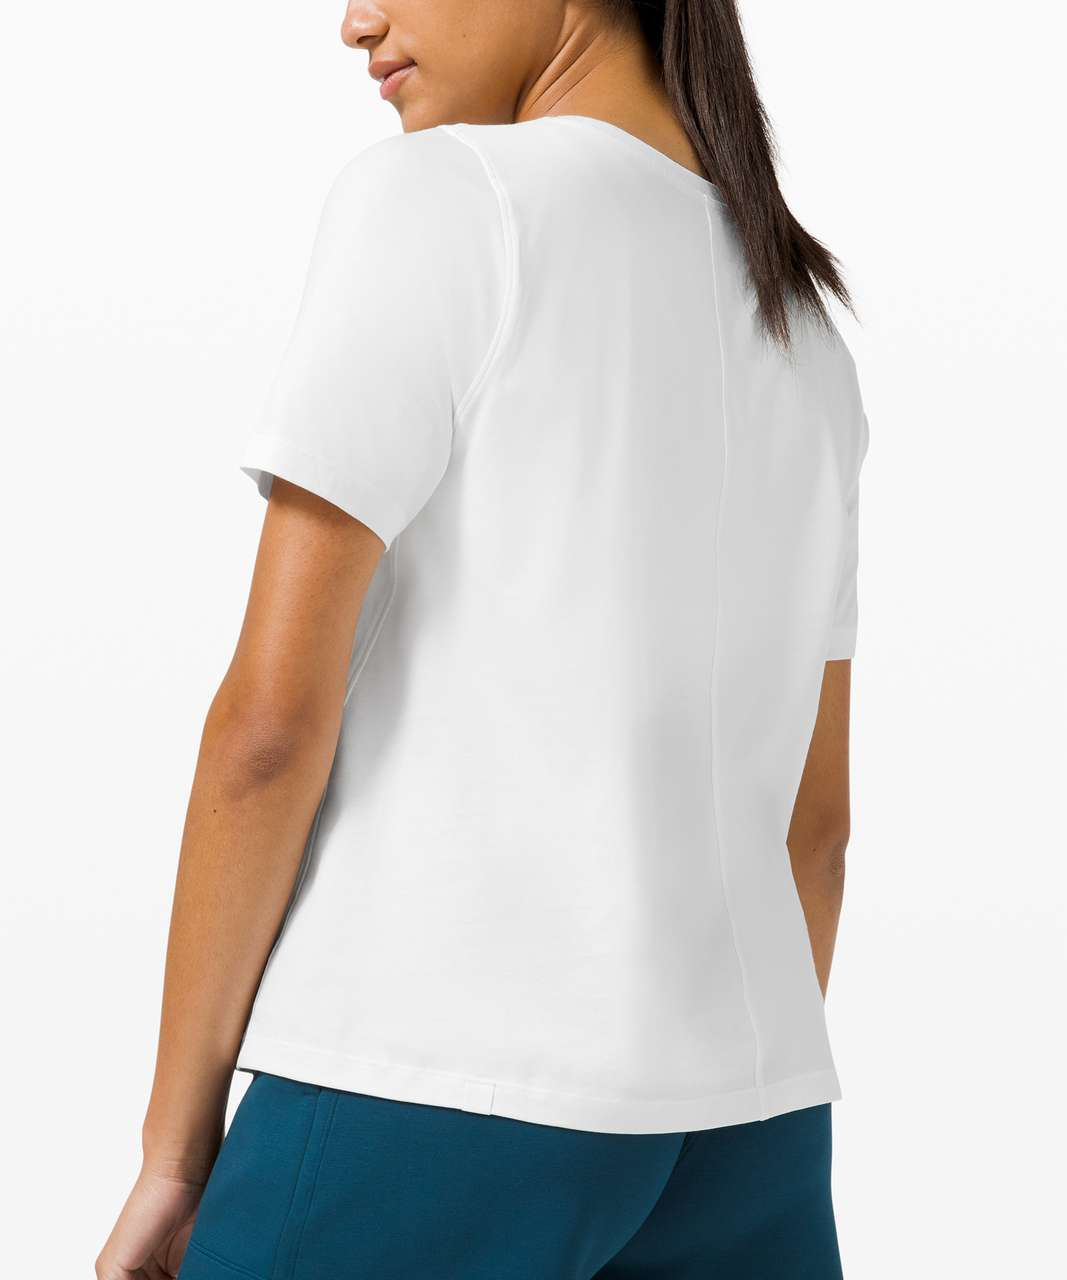 Lululemon Relaxed Fit Organic Cotton Tee - White